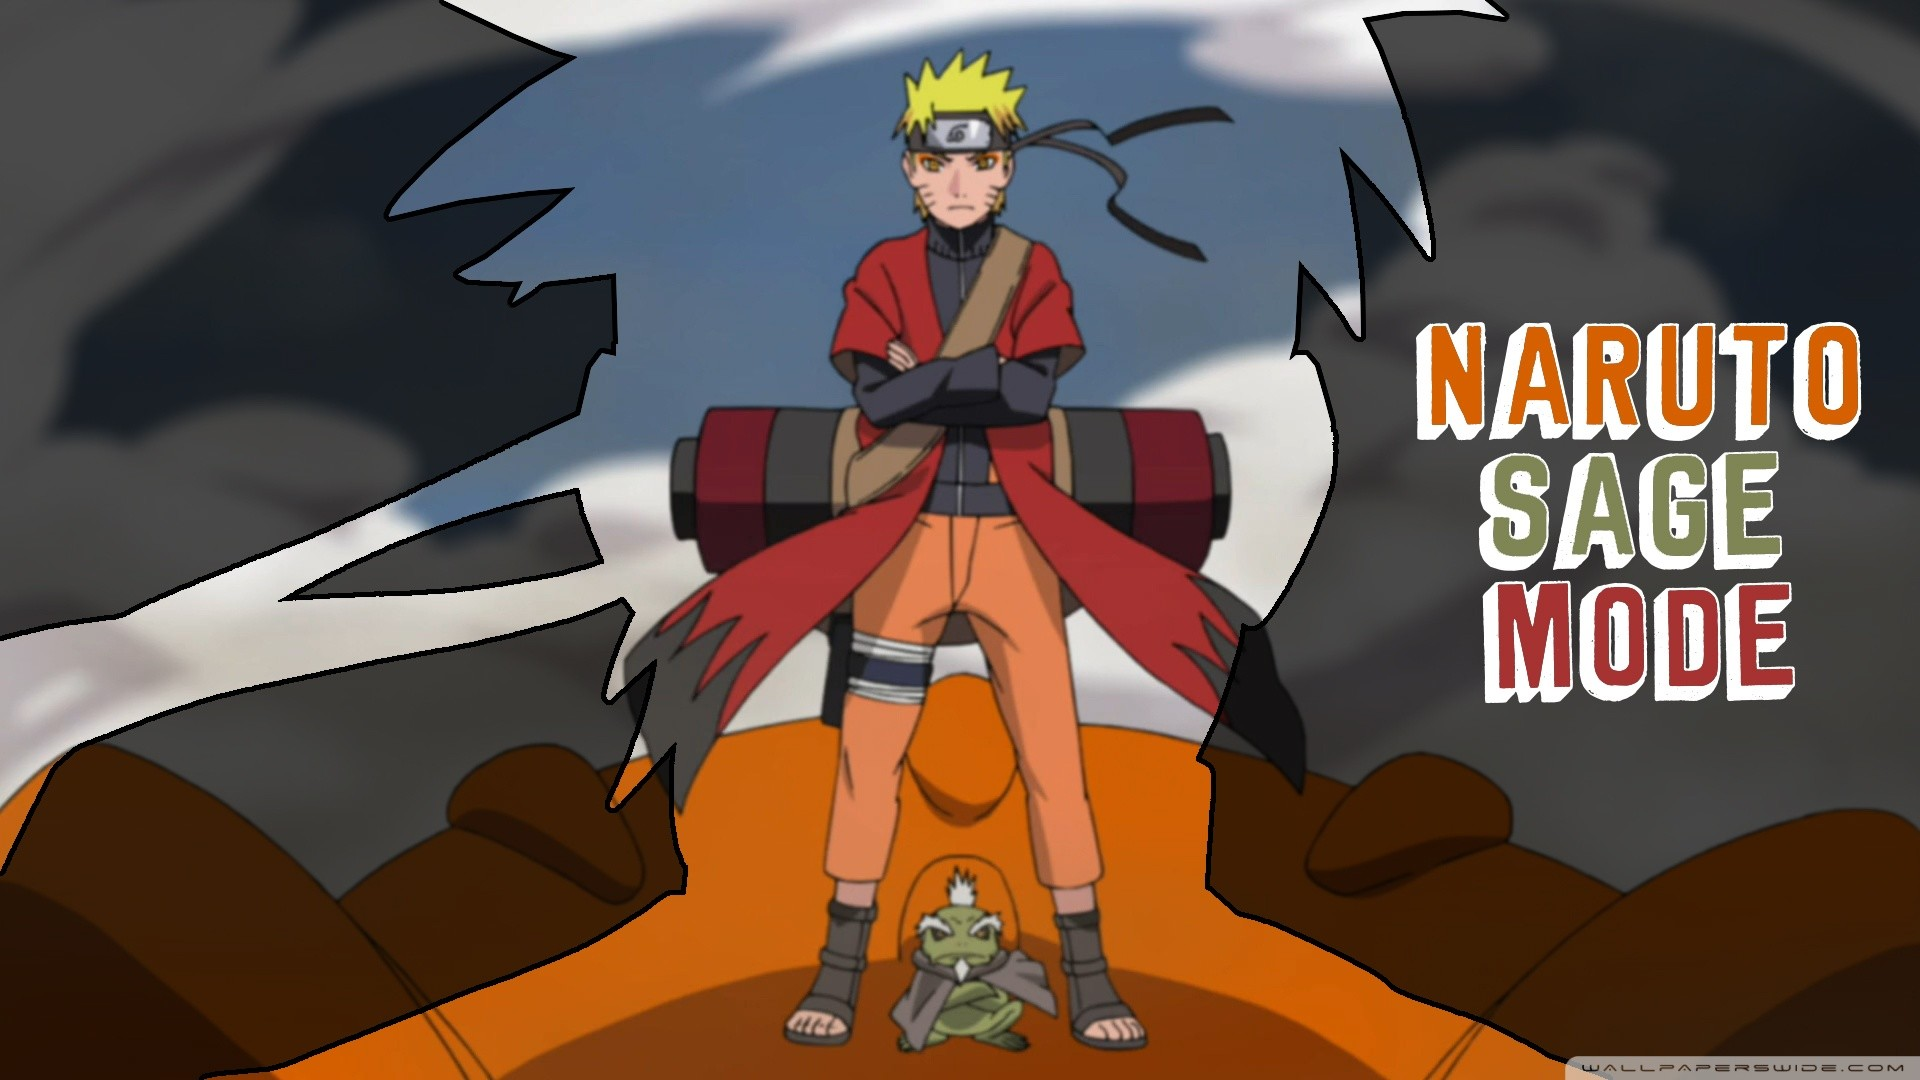 1920x1080 ... Naruto Sage Mode HD desktop wallpaper : High Definition ...